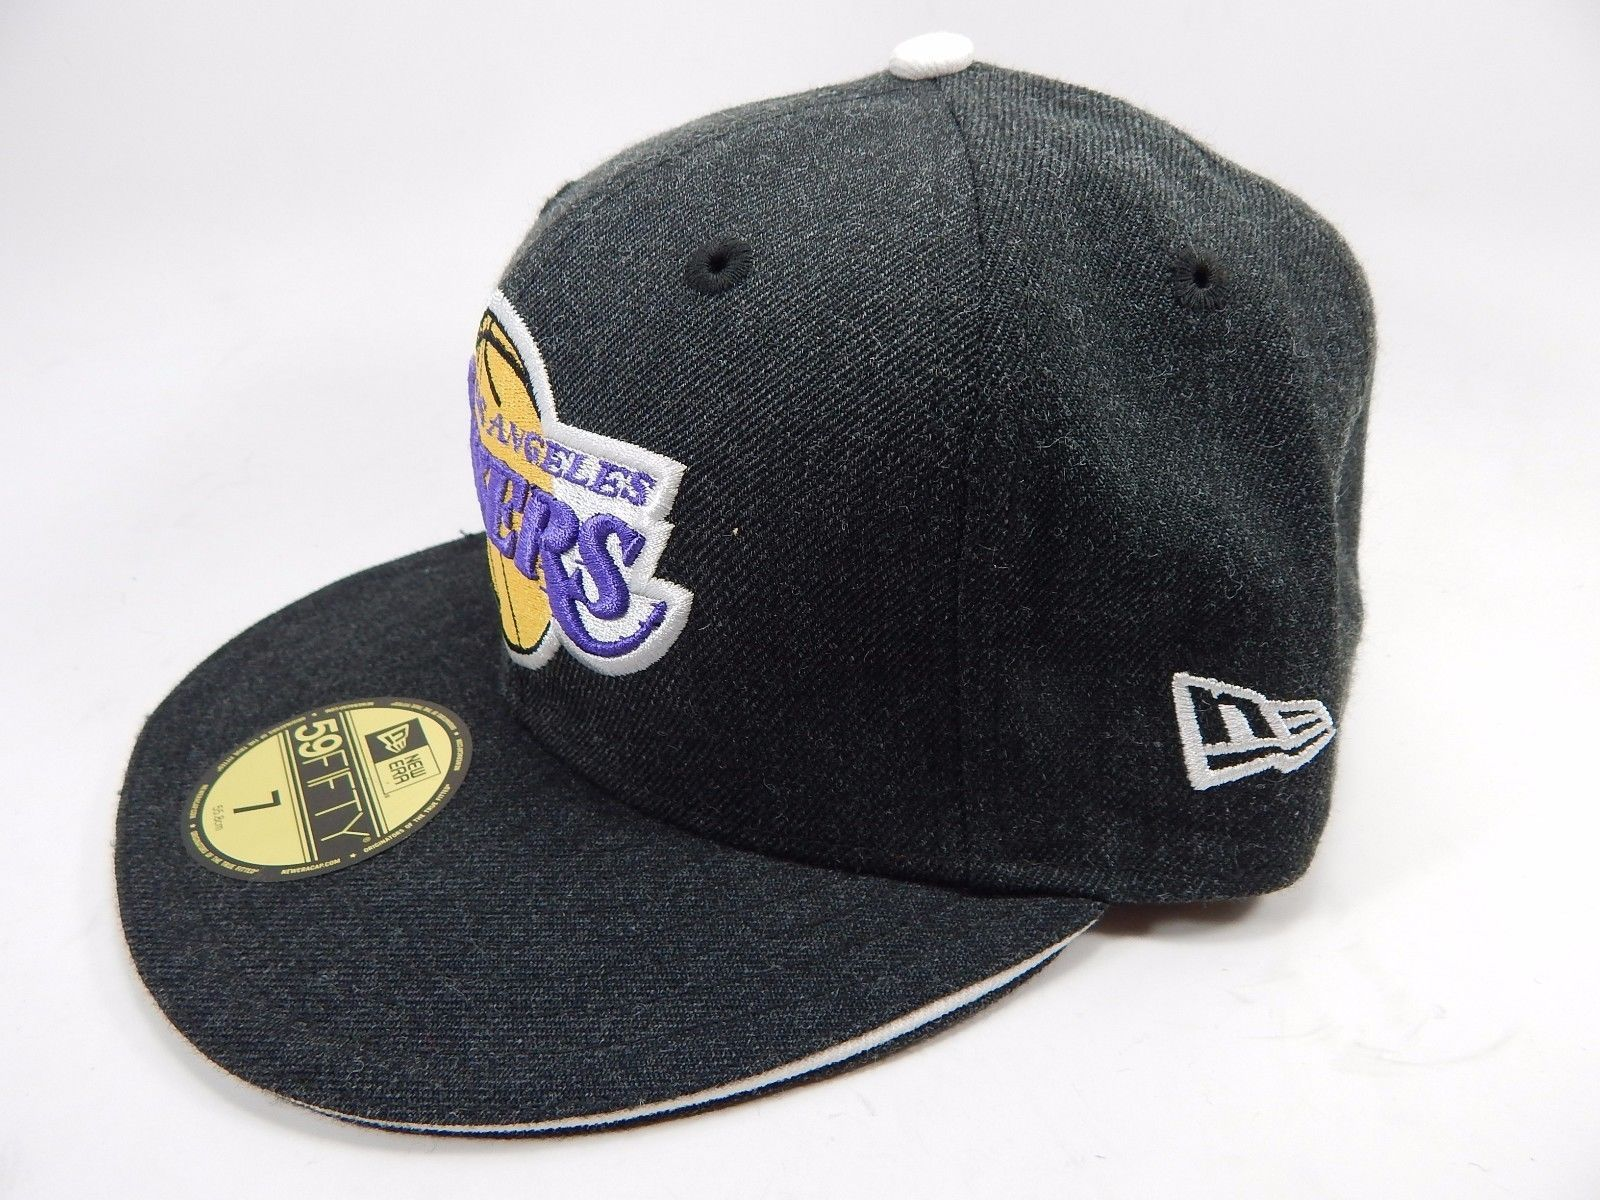 Los Angeles Lakers New Era Size 7 Fitted 59Fifty NBA Cap Hat Charcoal Gray